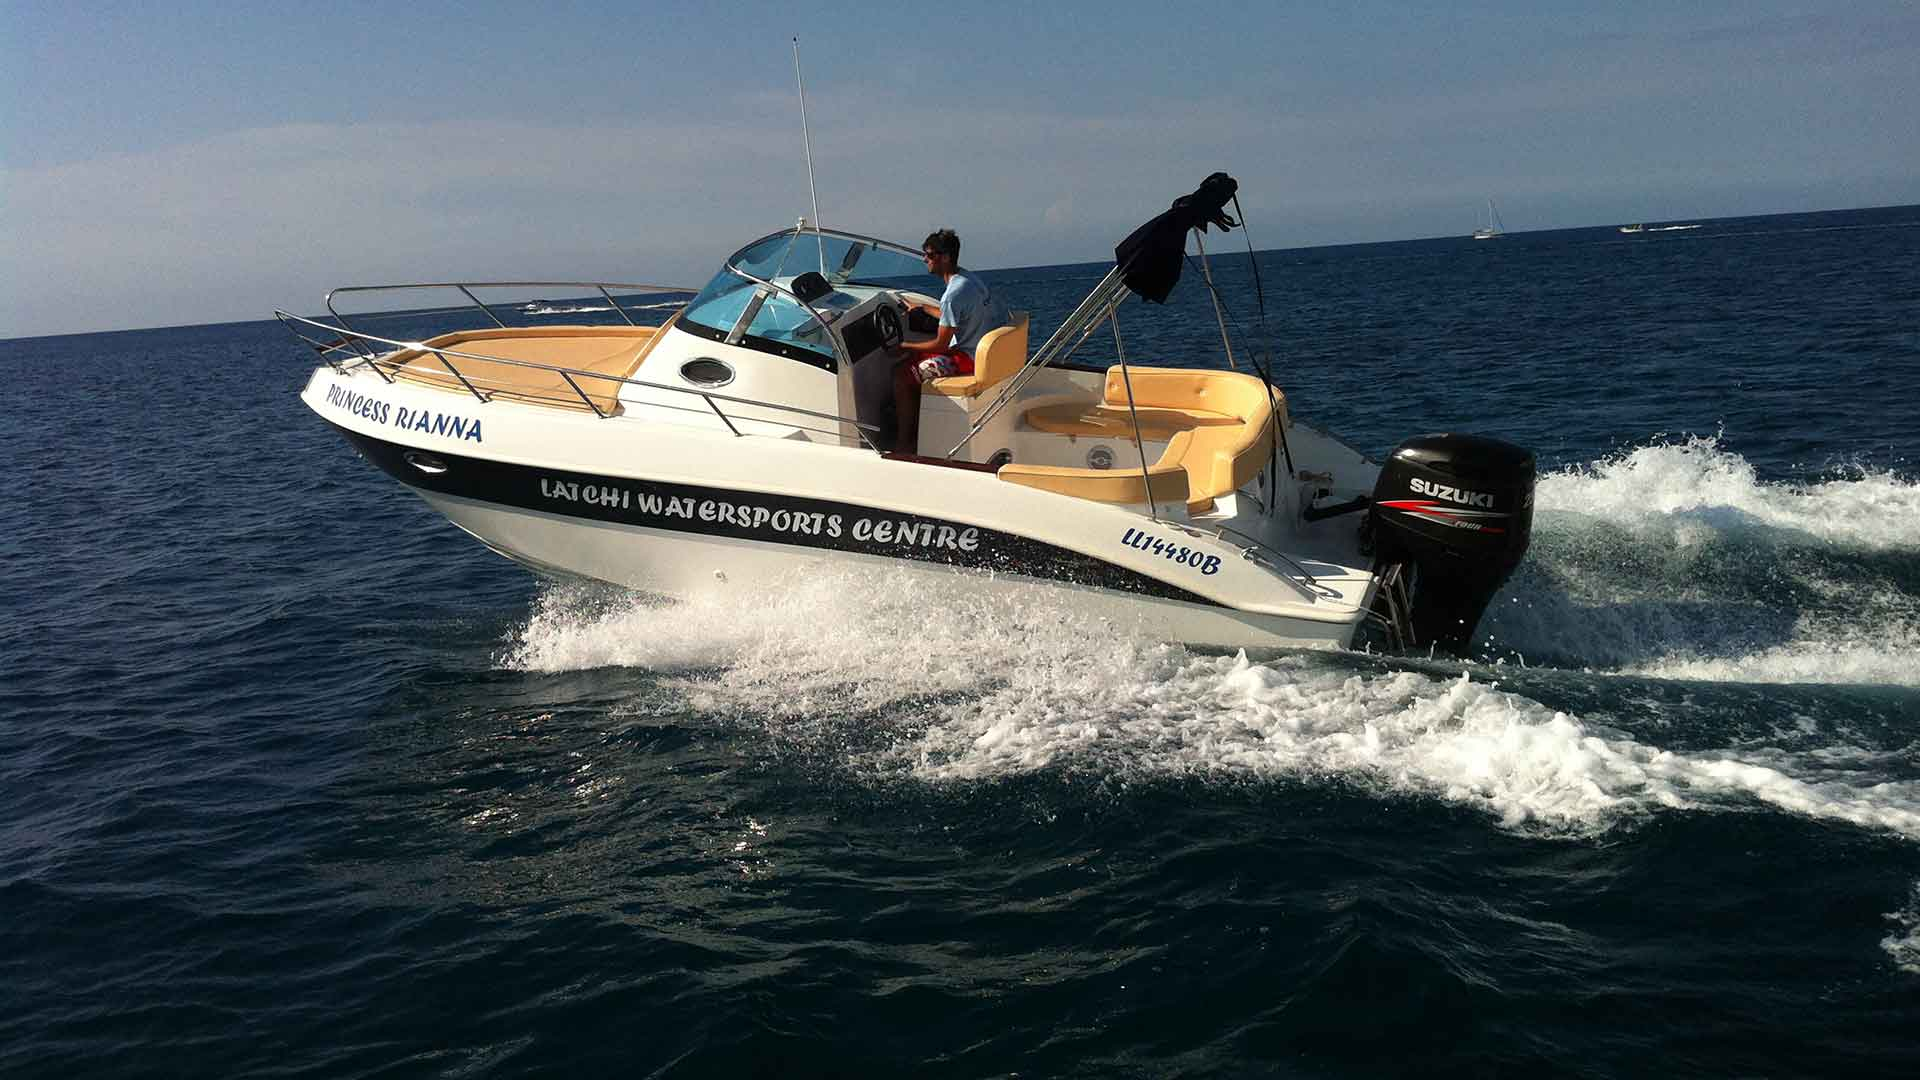 Boat Hire, Diving, Yacht Charters, Jet Ski in Cyprus with Latchi Watersports Centre